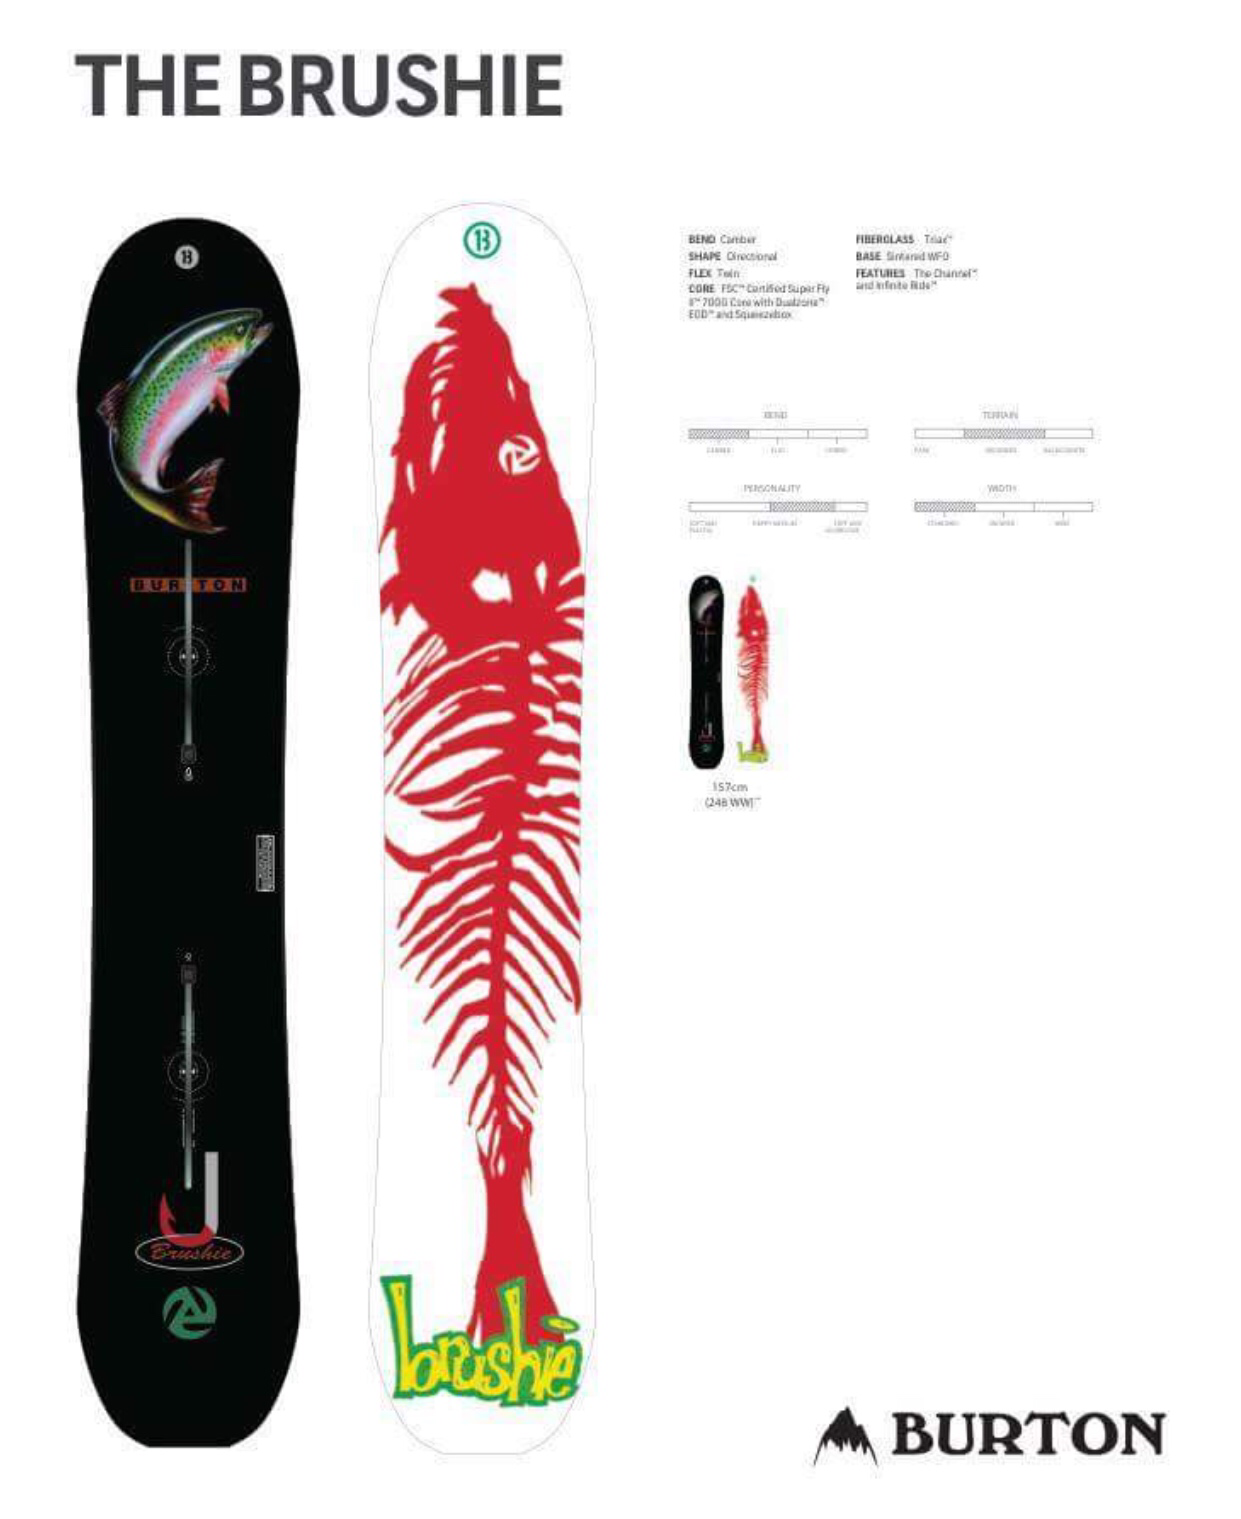 Burton to reissue the Brushie 'trout' model?